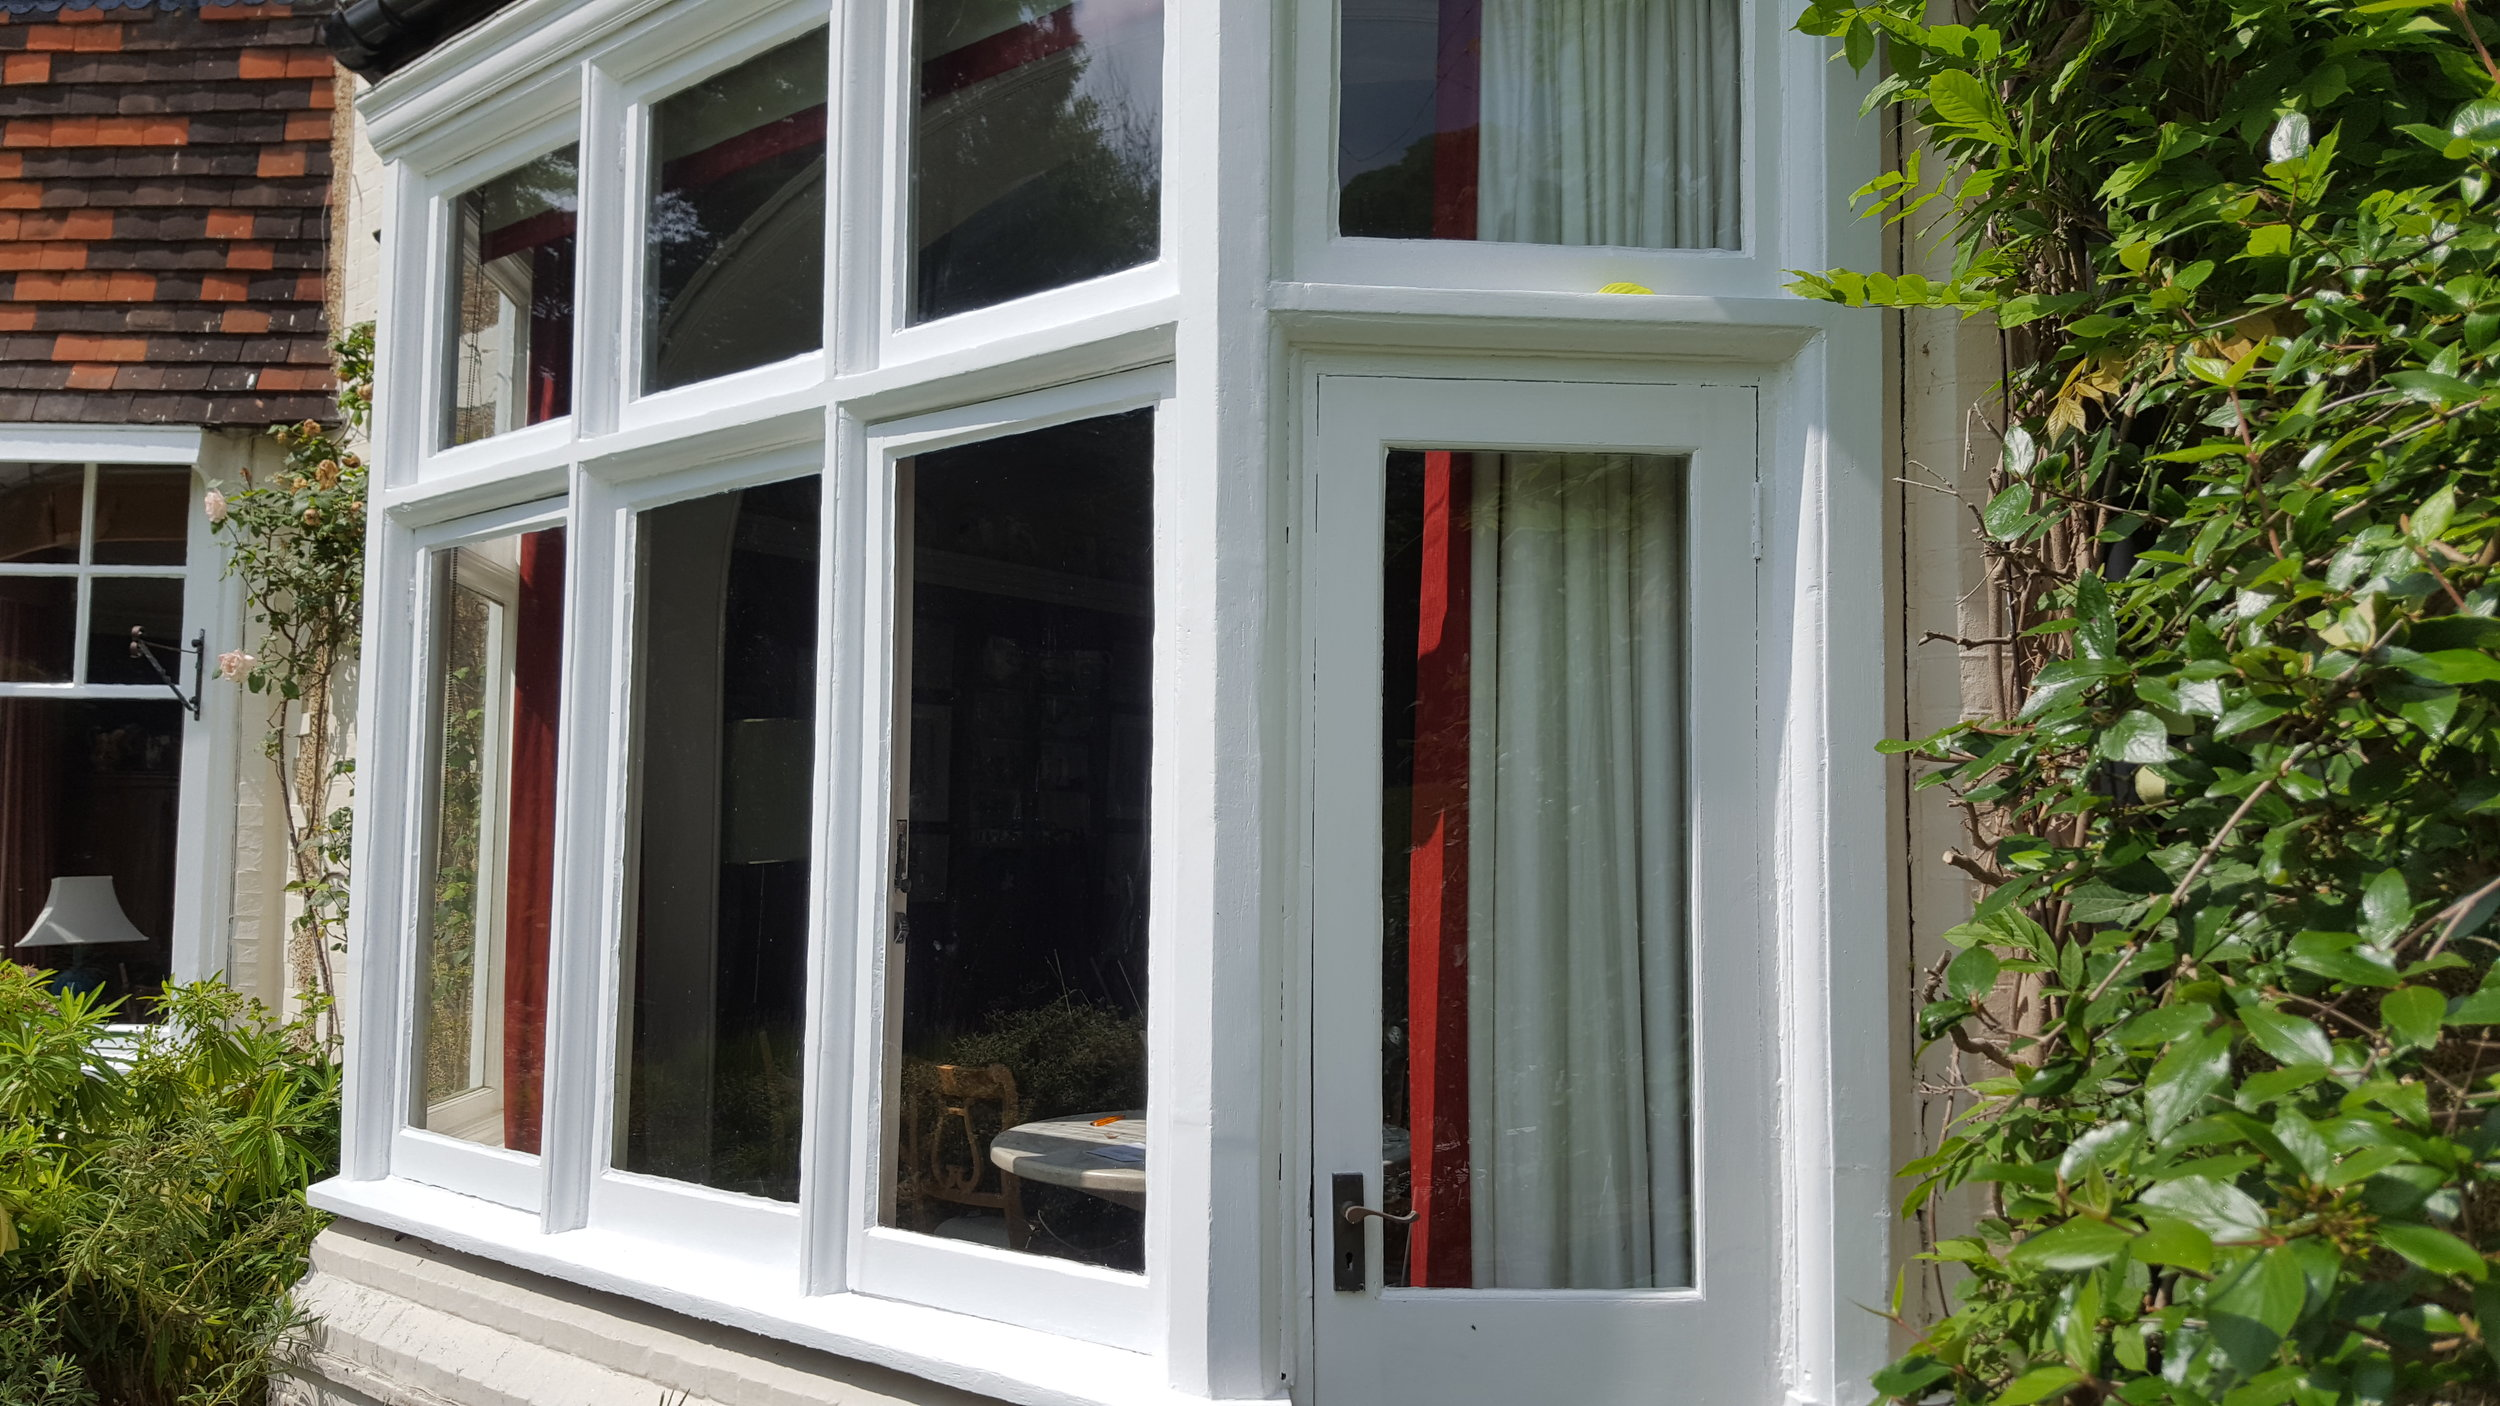 Windows AFTER fresh painting from Dorking Decorators